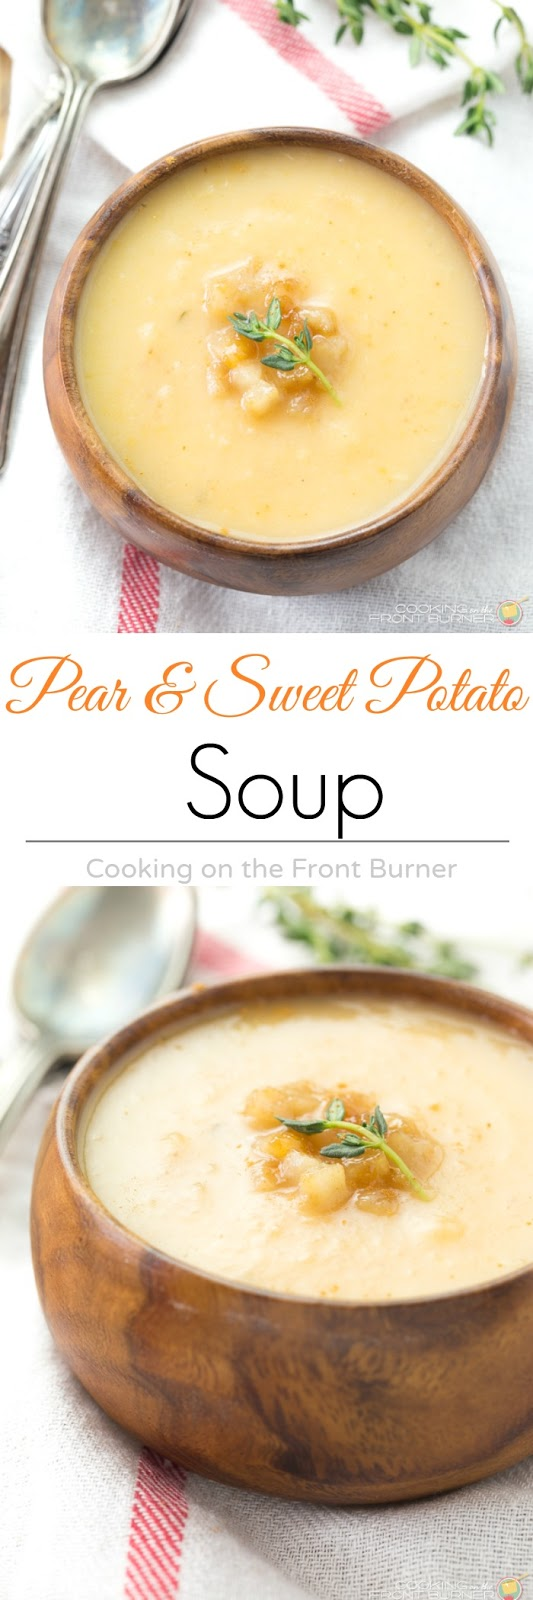 Easy Pear & Sweet Potato Soup | Cooking on the Front Burner